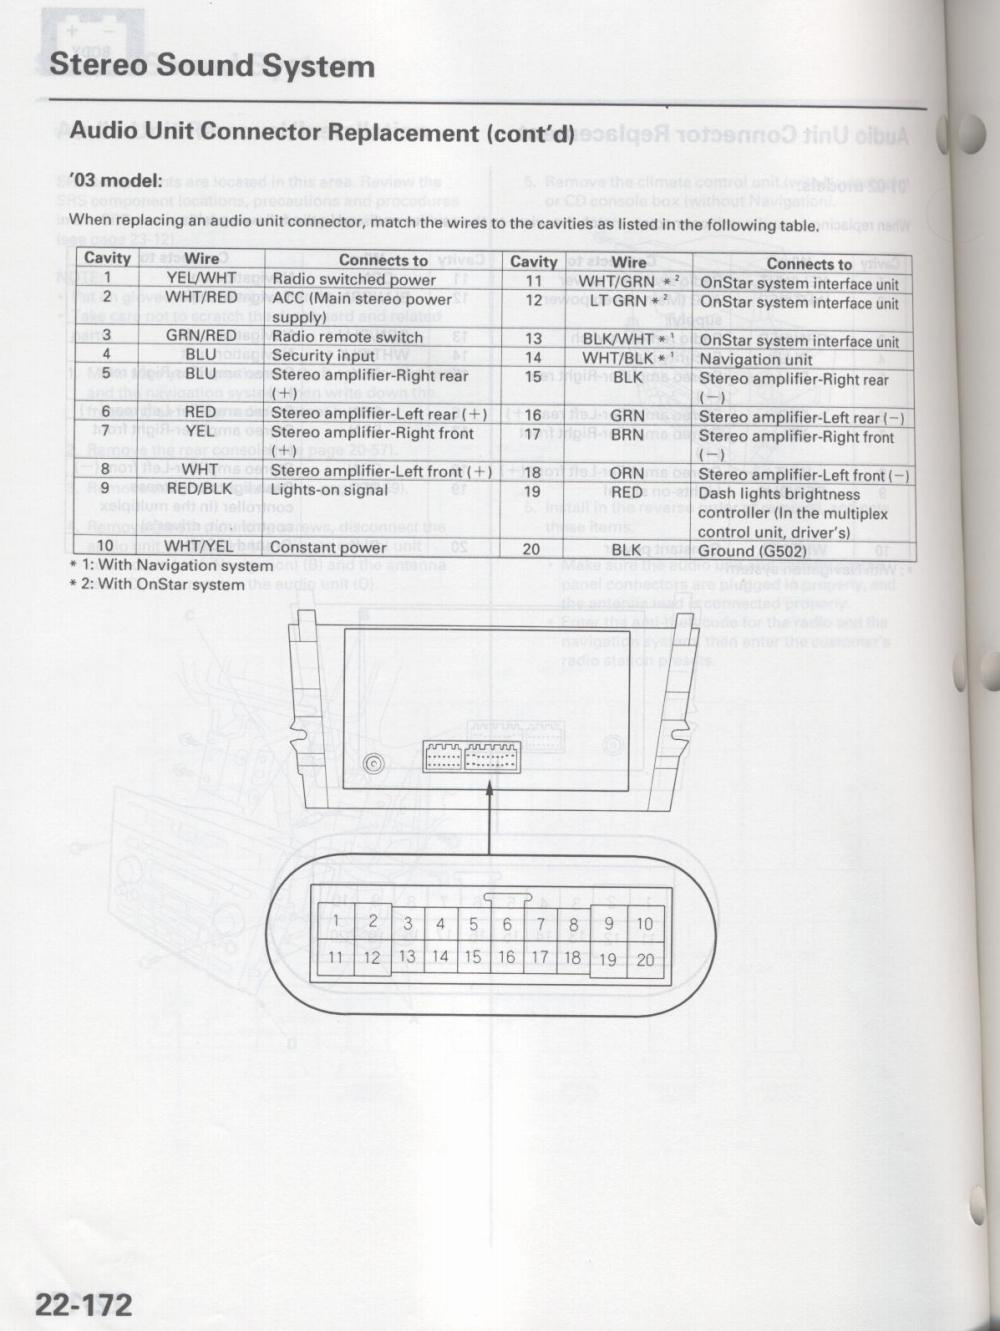 Acura Tl Wiring Diagrams Library. Radio Wiring Diagram For 2000 Acura Tl Hp Photosmart Printer 2003 Harness. Acura. 2000 Acura Tl Speaker Wire Diagram At Scoala.co